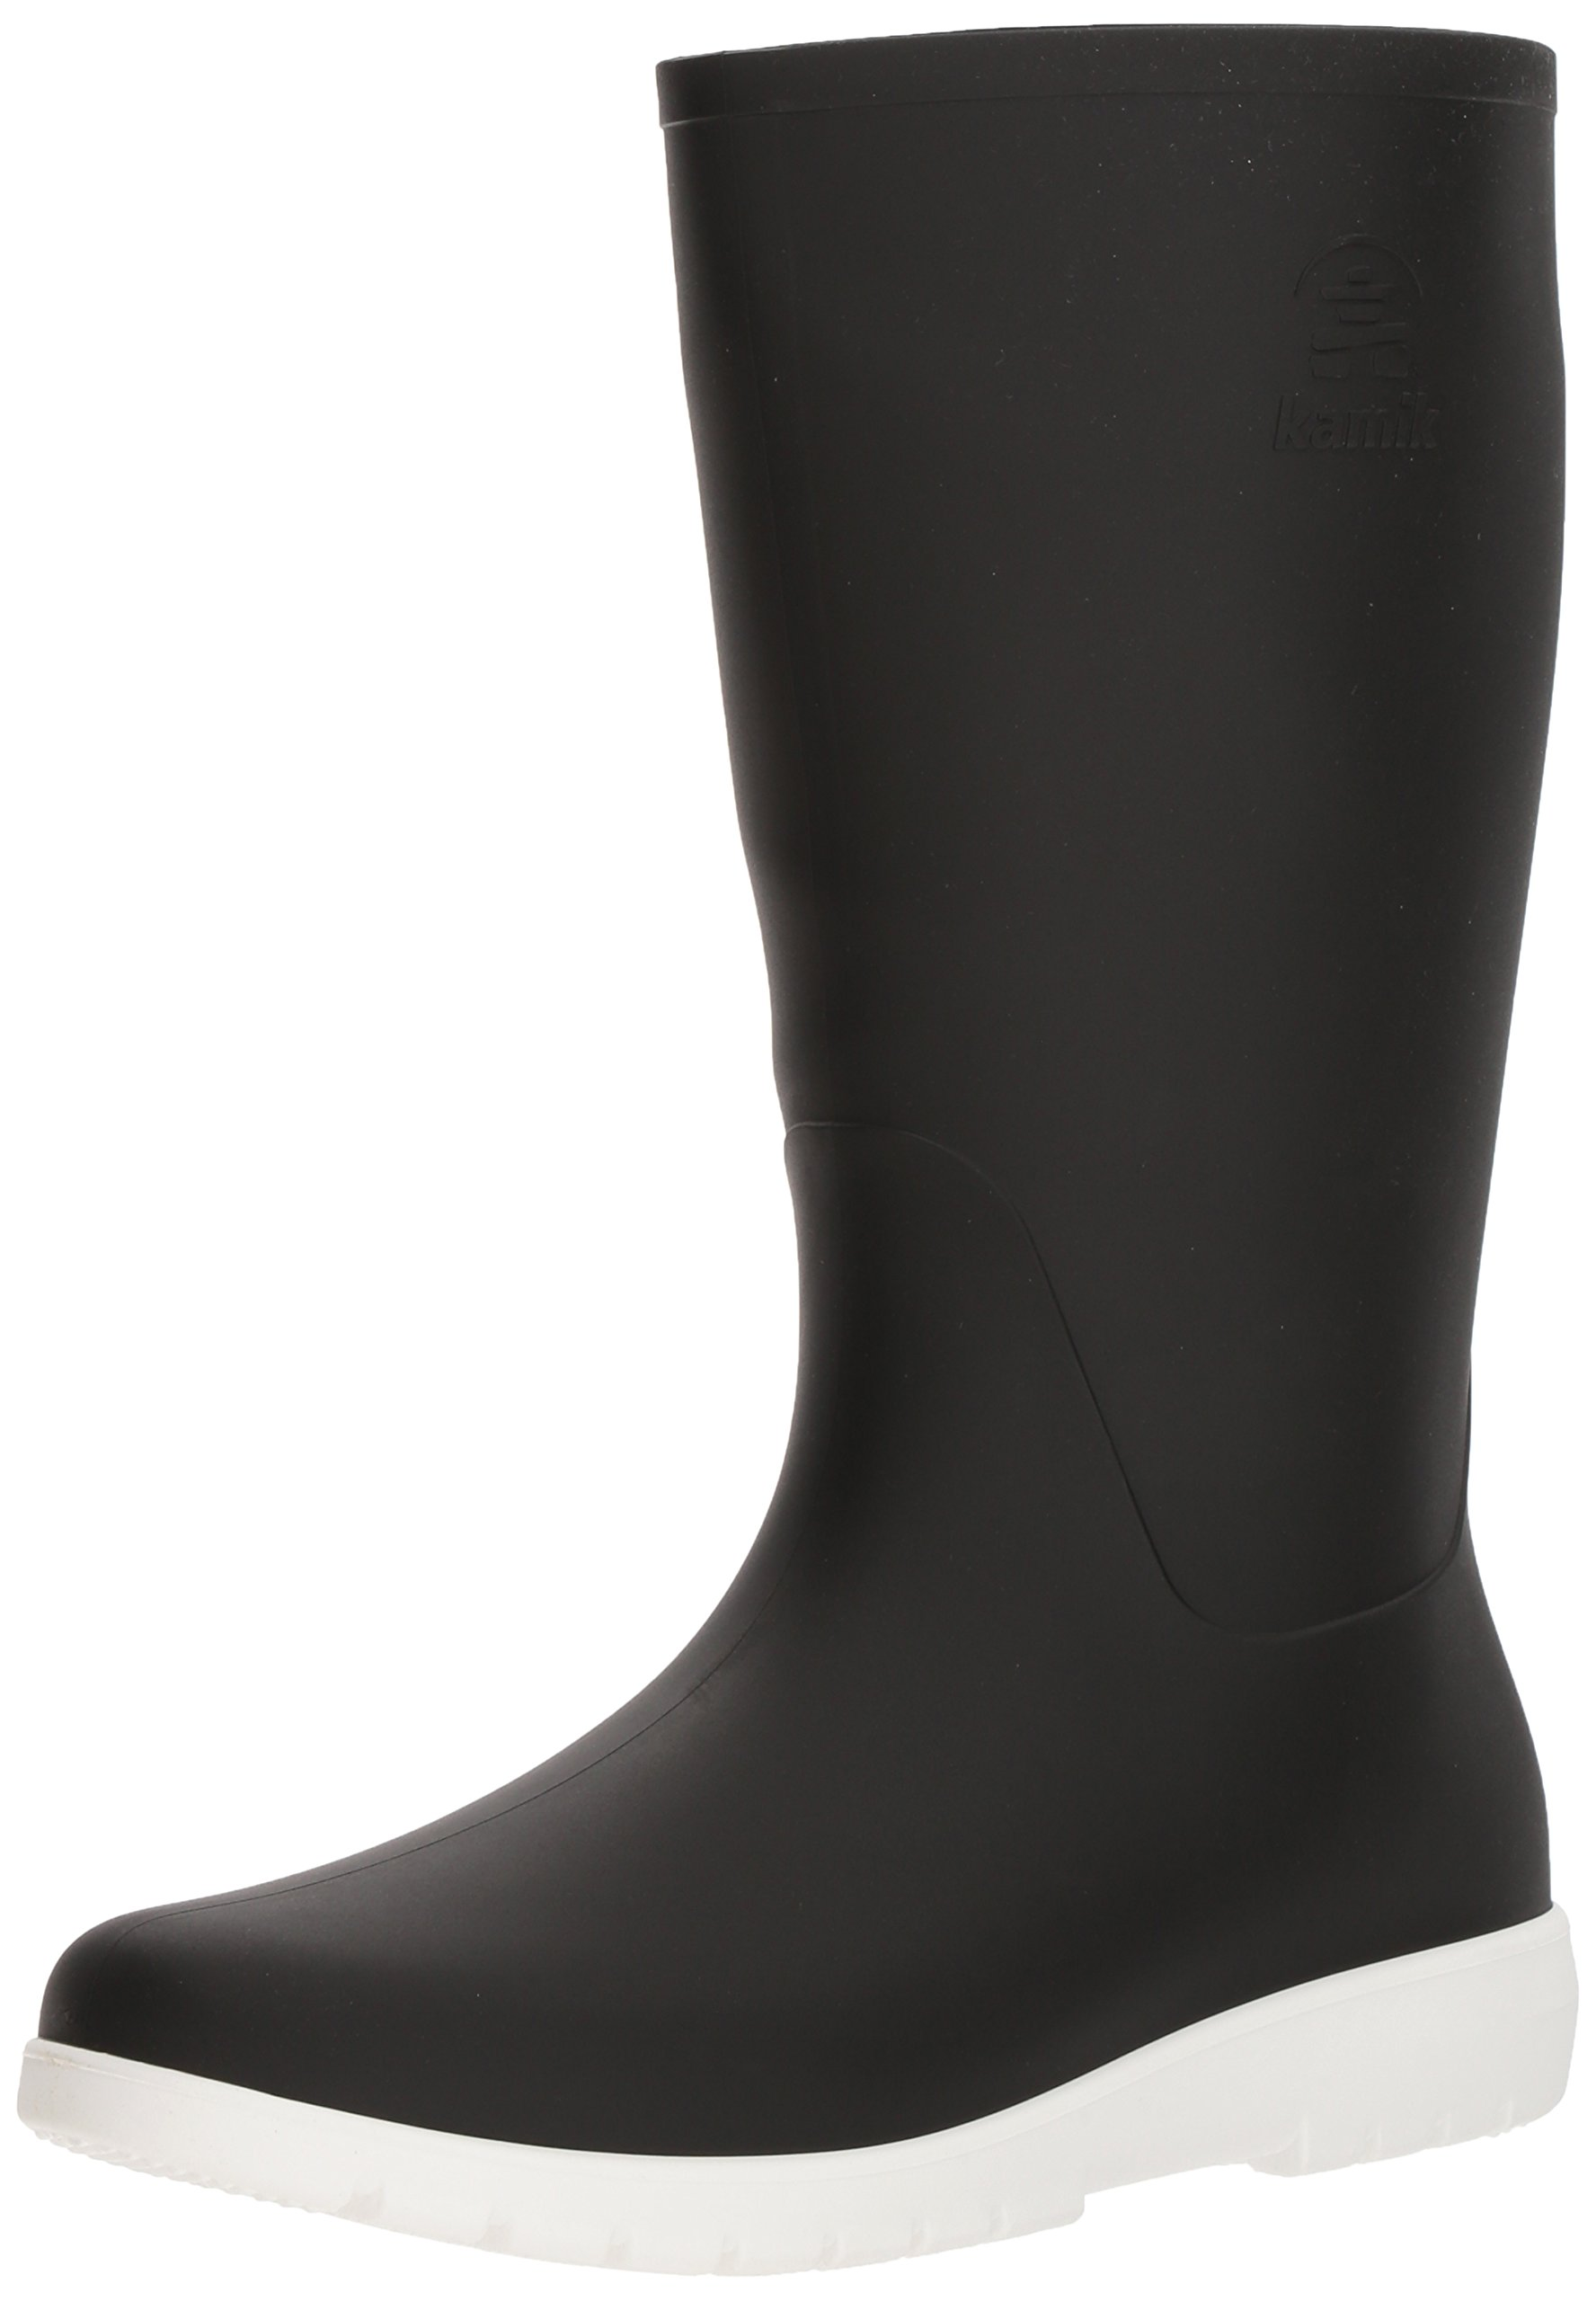 Kamik Women's Jessie Rain Boot, Black and White, 10 Medium US